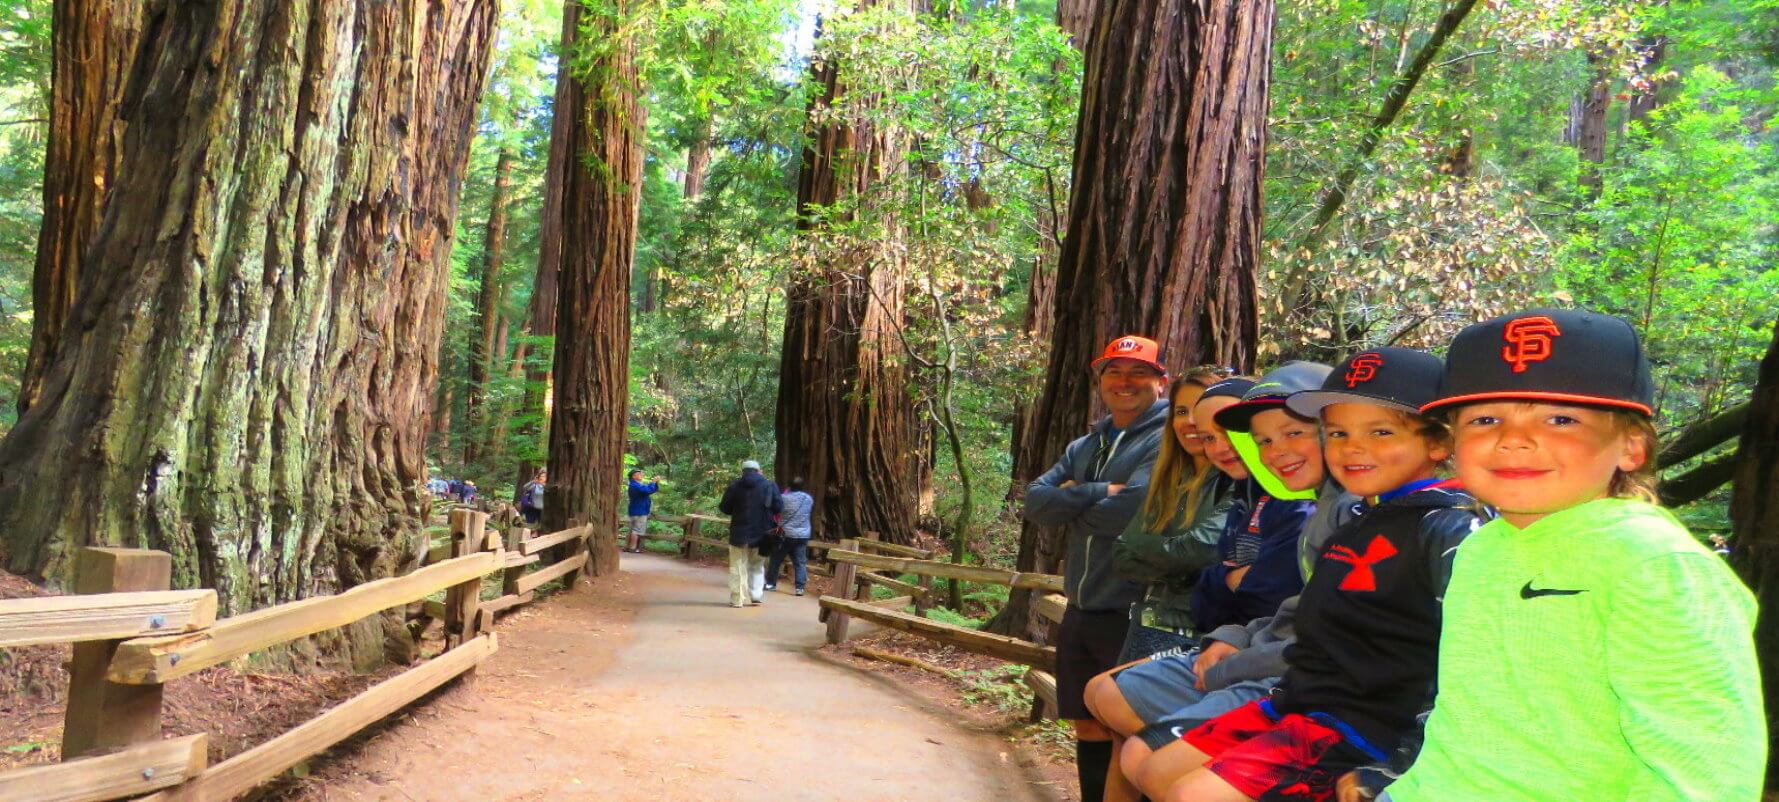 tour_to_muir_woods_park_of_t_redwood_trees_from_san_francisco_family_kids_friendly_tour